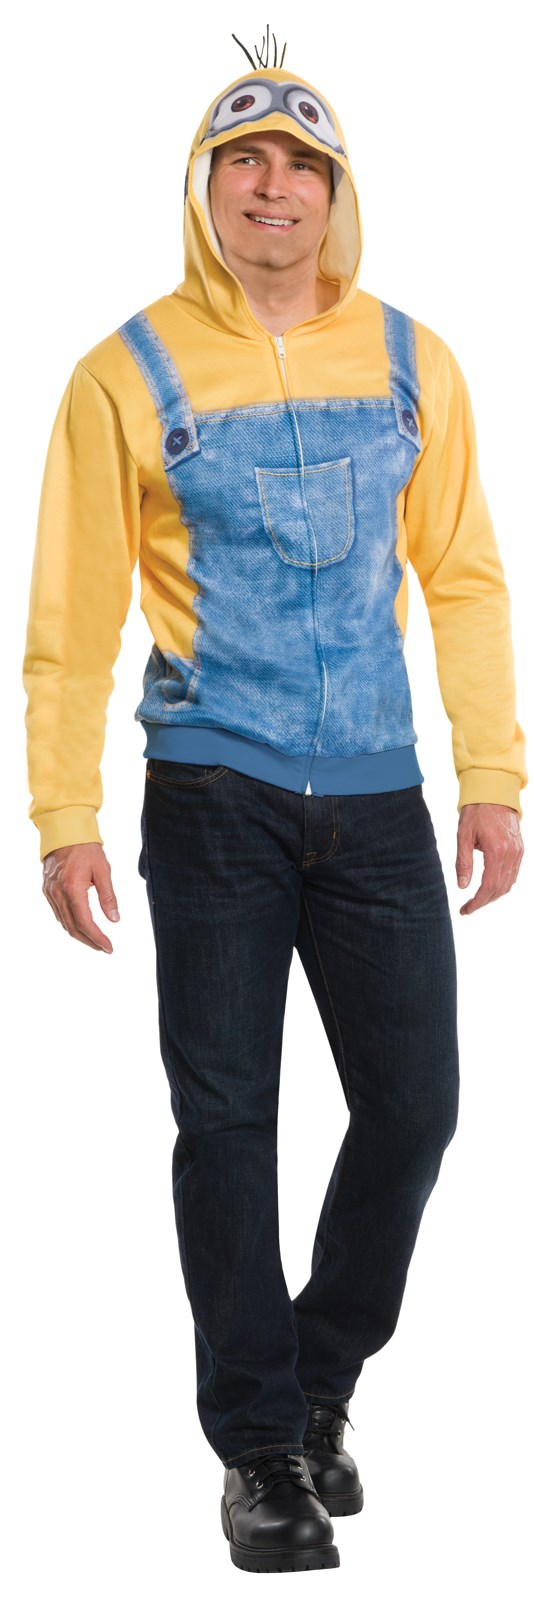 Minions Movie: Minion Hoodie For Adults